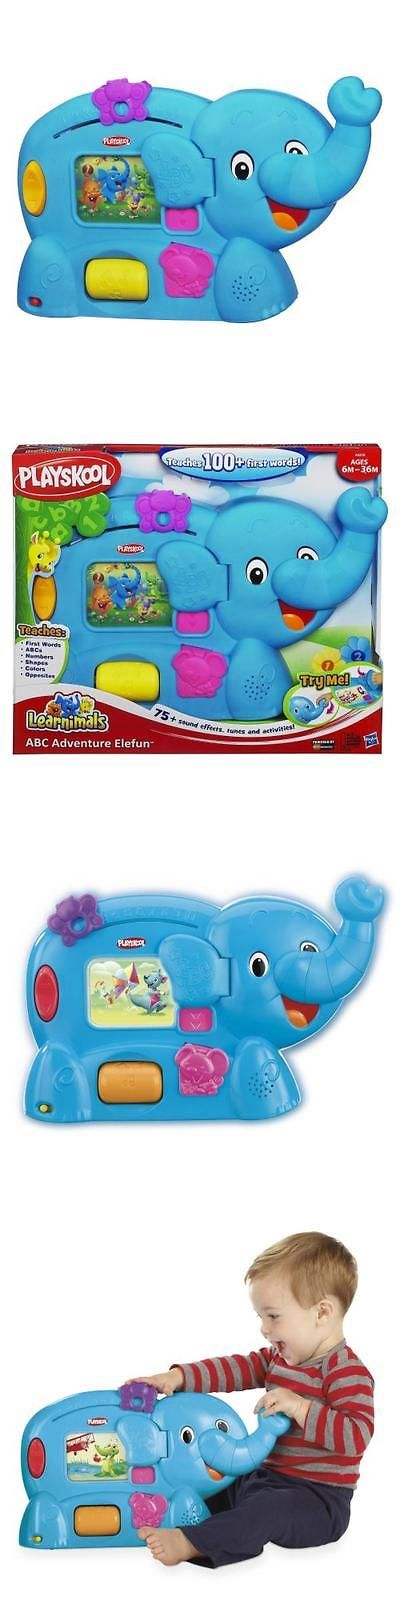 Playskool 2576: Playskool Learnimals Abc Adventure Elefun Toy, New, Free Shipping -> BUY IT NOW ONLY: $44.66 on eBay!